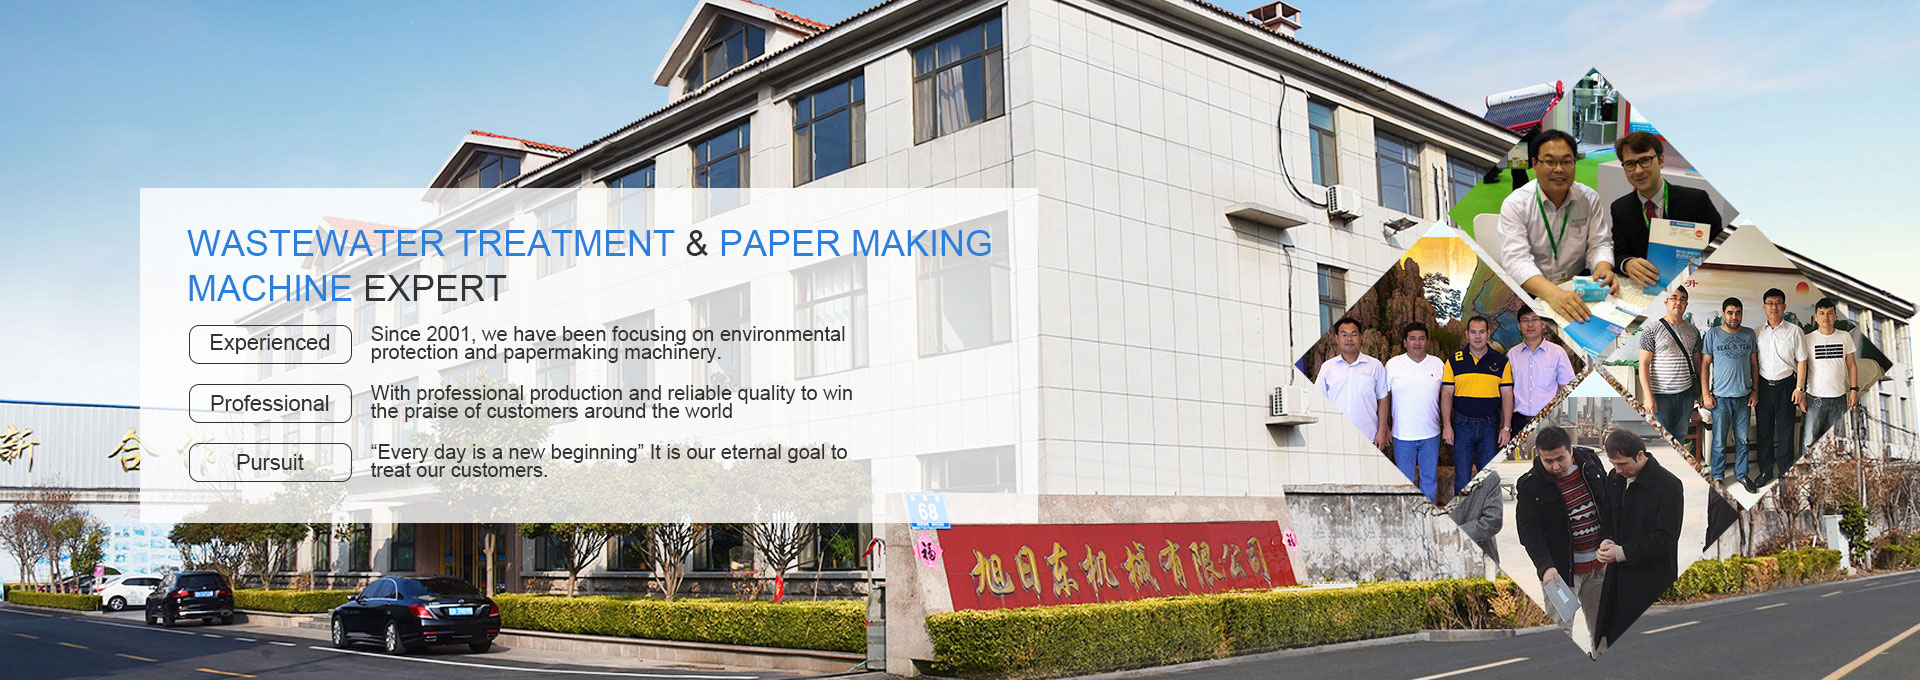 wastewater treatment and paper making equipment equipment